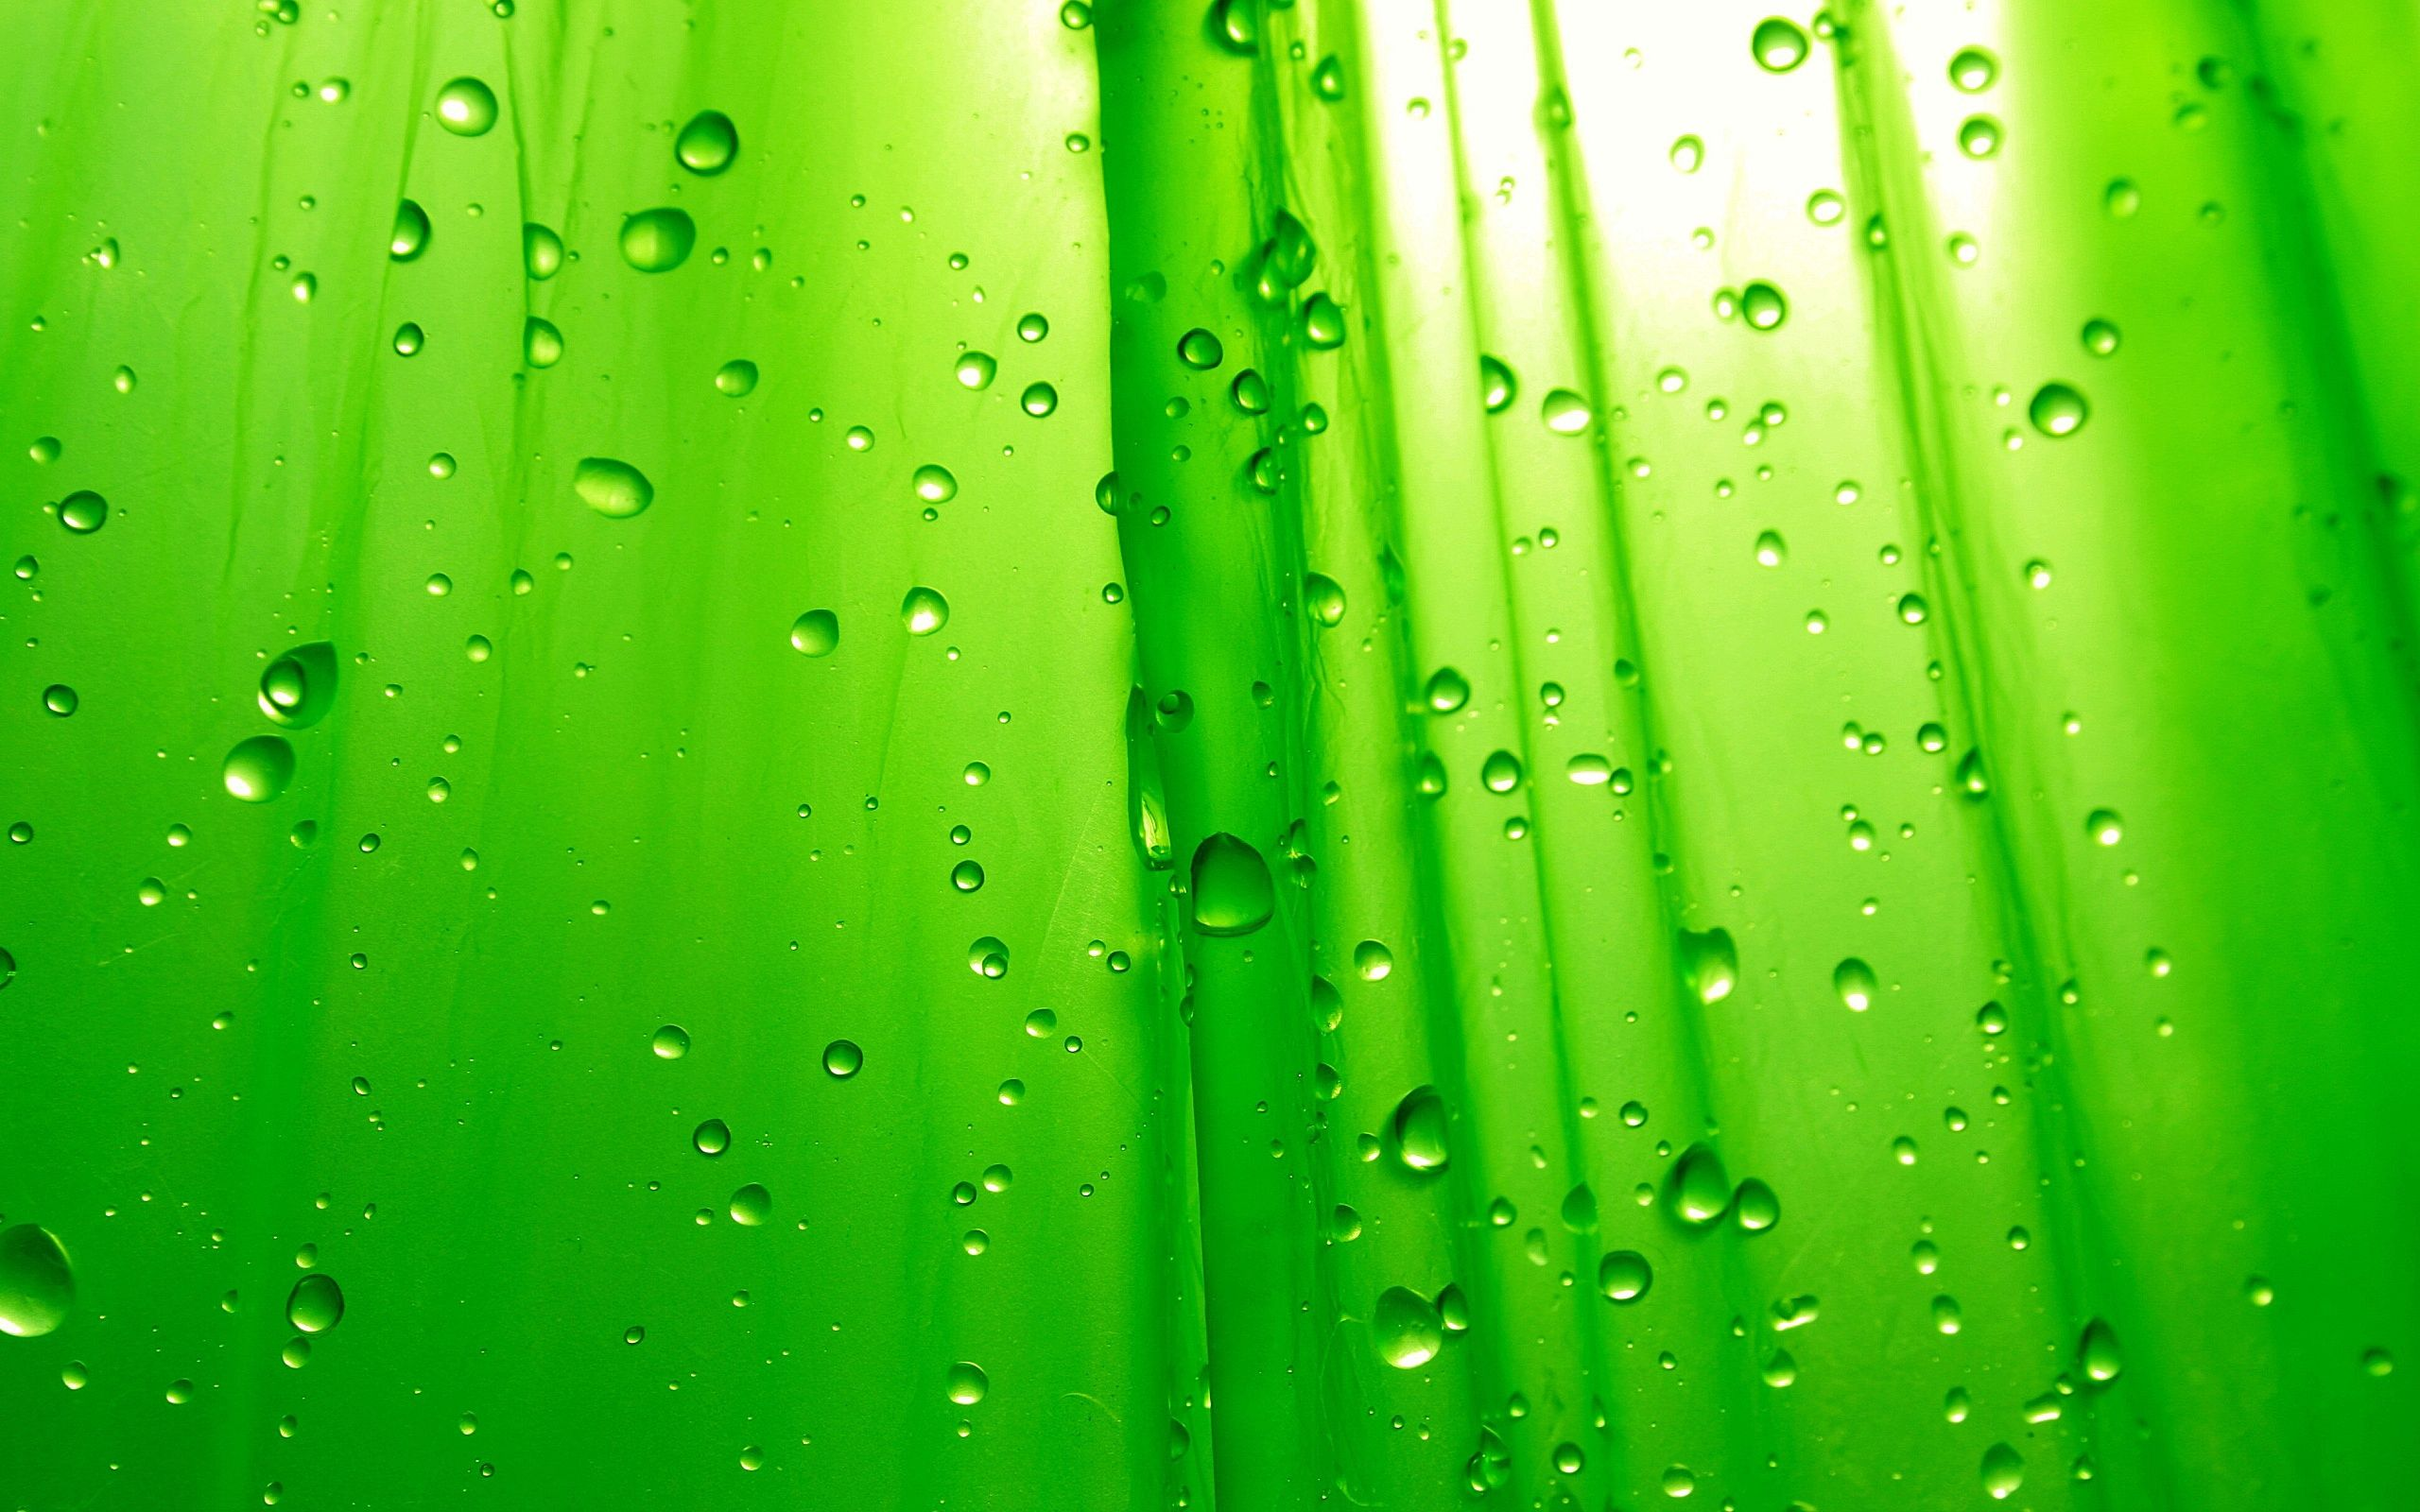 Wallpaper Hd Green Free Download My World Lime Green